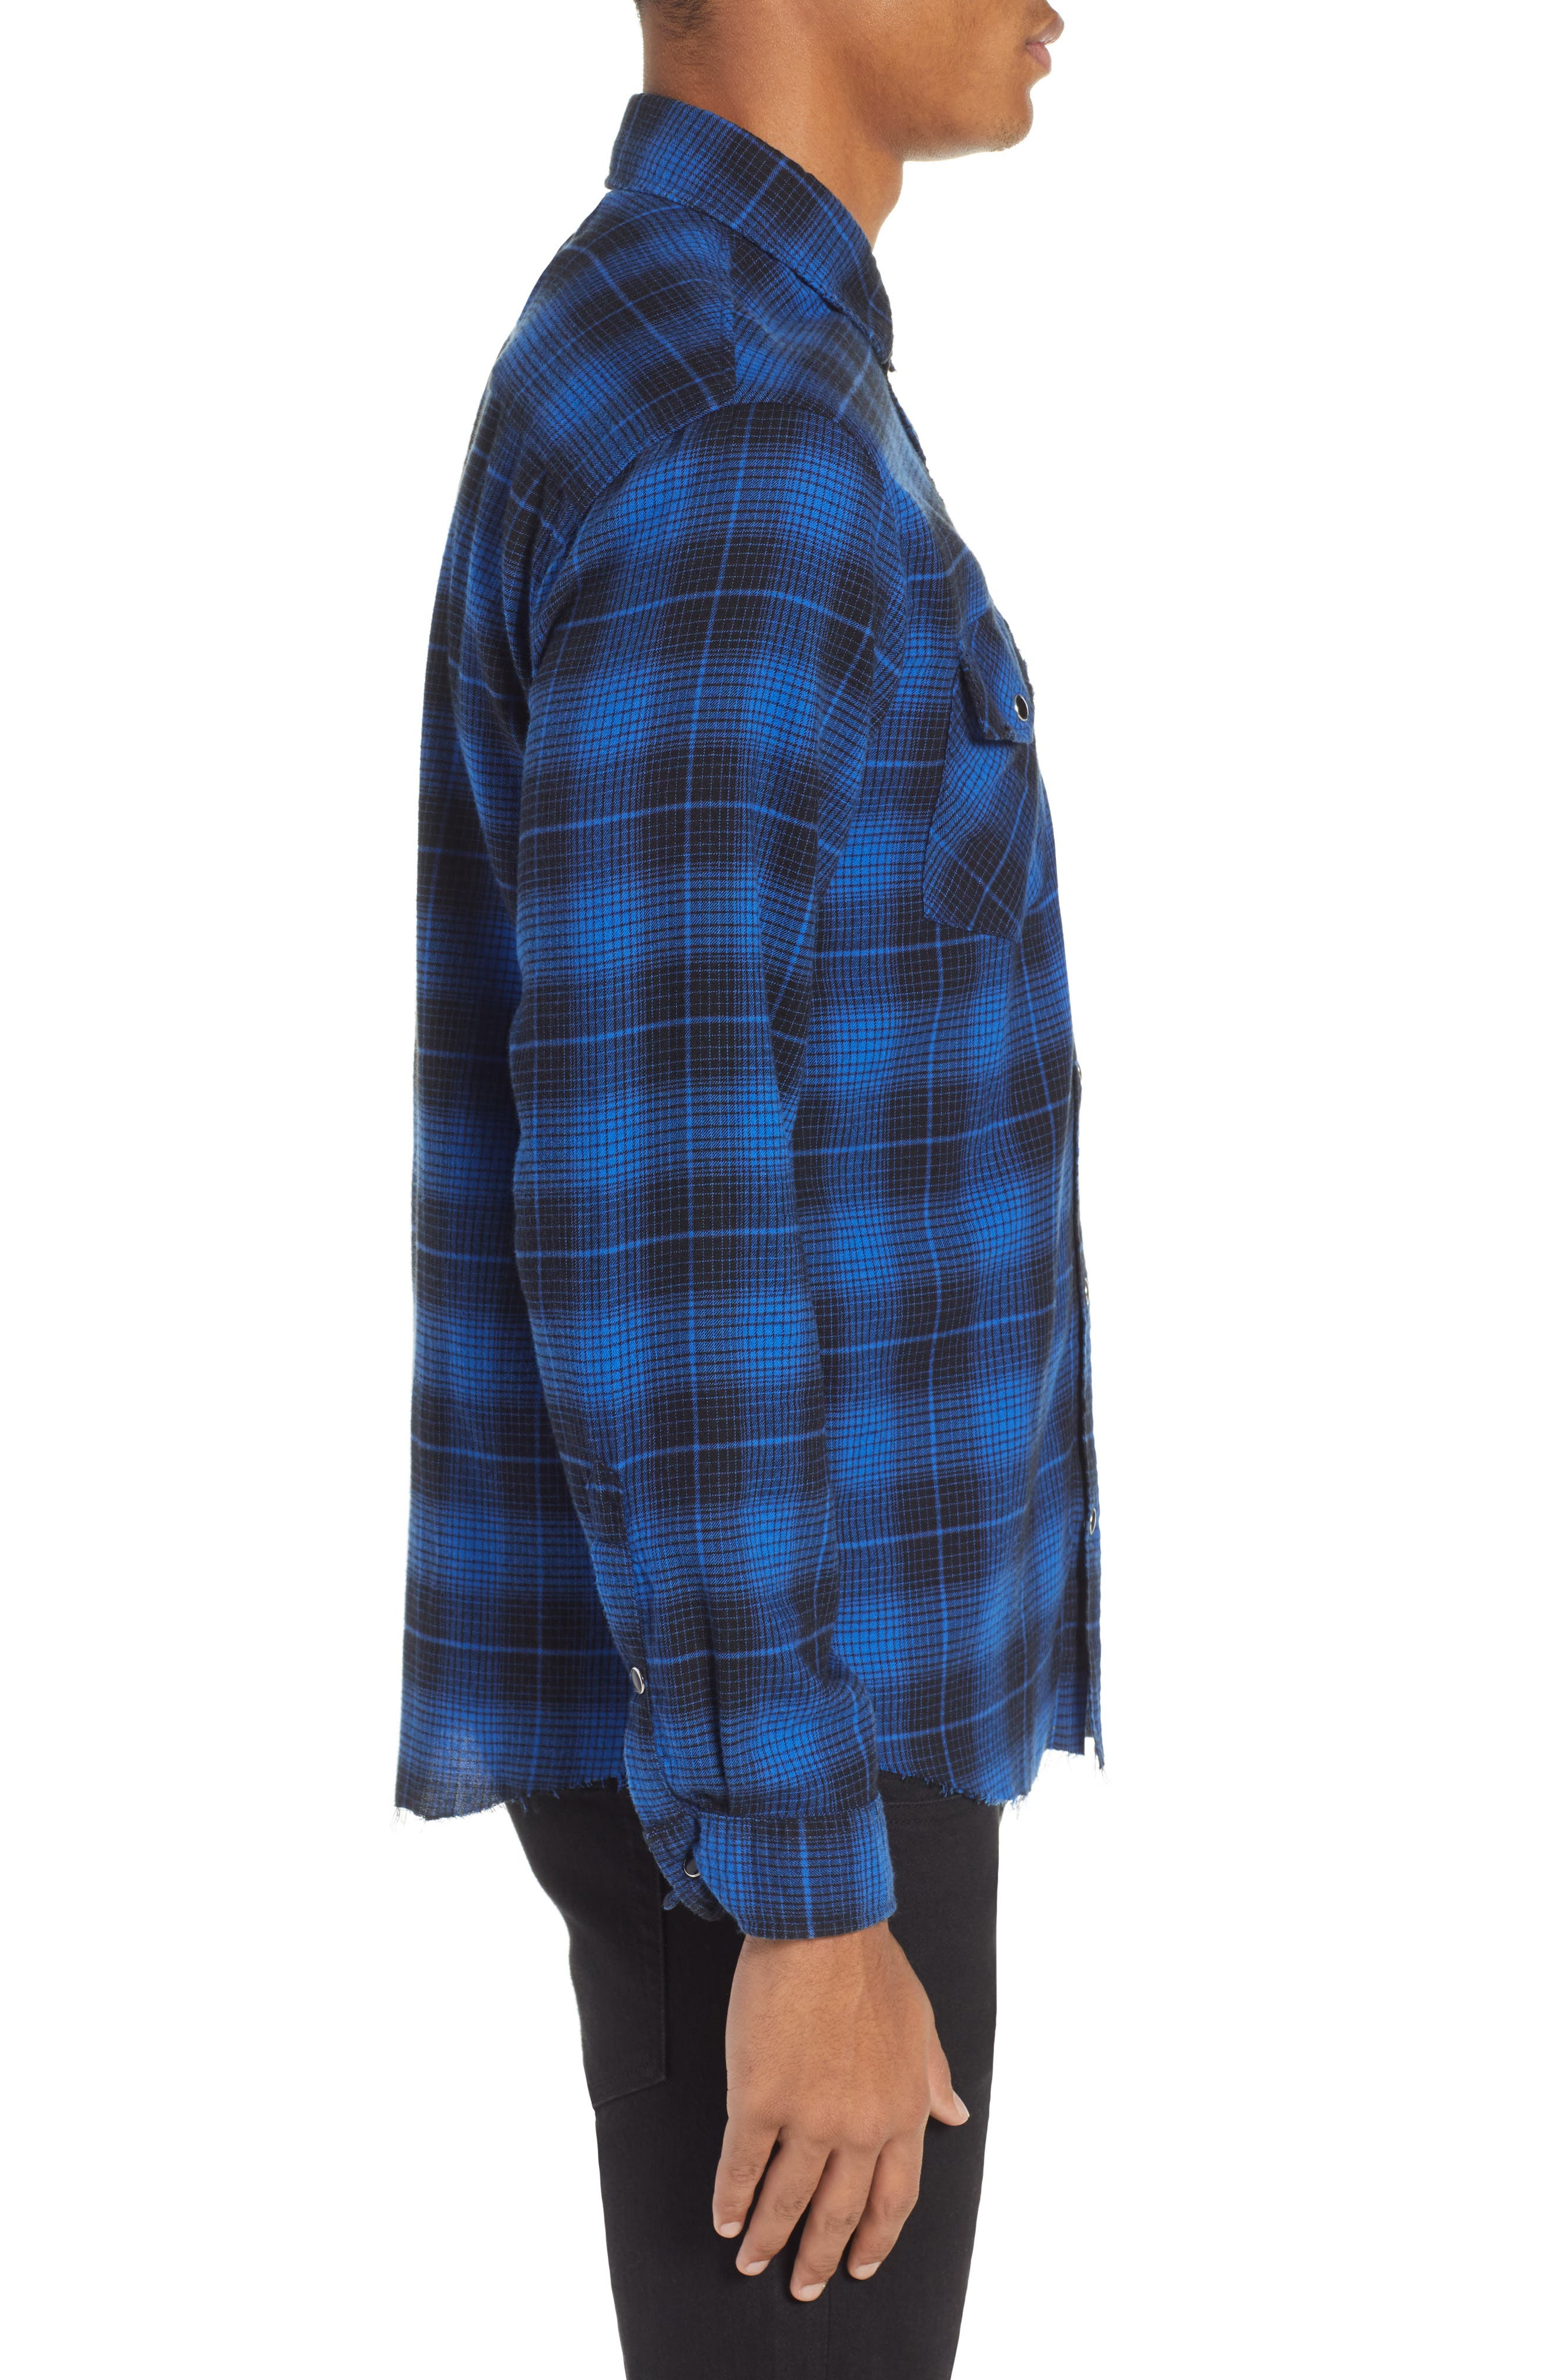 THE KOOPLES,                             Plaid Flannel Shirt,                             Alternate thumbnail 4, color,                             ROYAL BLUE / BLACK